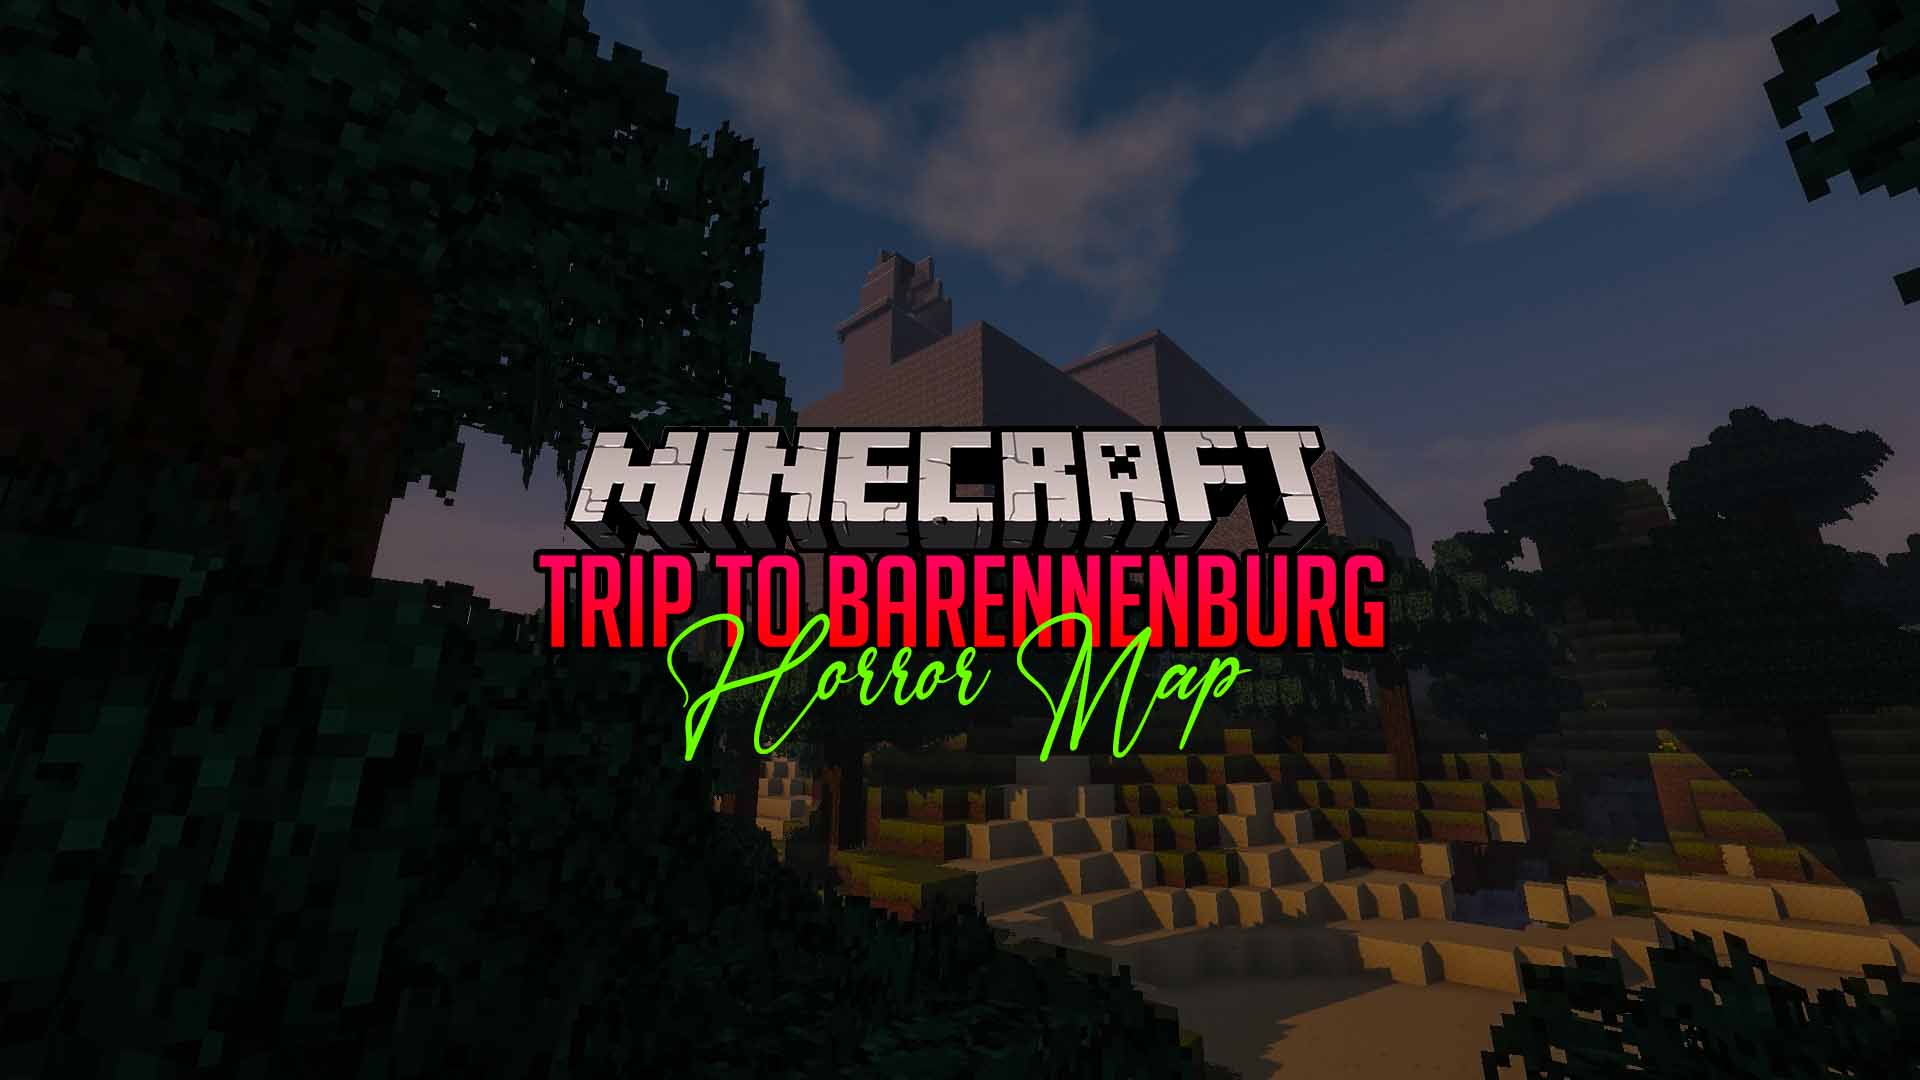 TRIP TO BRENNENBURG! A MINECRAFT HORROR MAP Minecraft puzzle maps 103-th stream Trip To Brennenburg SatooTheDragon Amnesia The Dark Descent Sound of Brennenburg Castle Jamayr Productions Trip to Brennenburg (1.14-1.14.4) HORROR MAP Planet Trip to Brannenburg is a horror map, which takes place in Amnesia universe Story you arrive near Brannenburg castle, at coast Brennenburg Minecraft Maps Planet Minecraft Community Browse and download Minecraft Brennenburg Maps by the Planet Minecraft community Trip to Brennenburg (1.14-1.14.4) HORROR MAP Minecraft Map & Project Brennenburg Castle Alexander of Brennenburg minecraft horror map Minecraft Horror Maps Eyes the Horror Map v1.0 · Left To Decay · Trapped Inside · Killer Restaurant What is the scariest Minecraft map? How do you get horror maps on Minecraft? What are Minecraft horror maps? What is the scariest horror map? The BEST Minecraft Horror Map I've EVER PLAYED!! DanTDM This Minecraft Map Read My Mind Playing a Not So Scary Minecraft HORROR Map WORLD'S BEST MINECRAFT HORROR MAP!!! **scary A Minecraft Horror Map · With Halloween just around the corner, I felt like playing something scary. · A terrifying title Making a Horror Map in Minecraft Top 5 best scary Minecraft maps in 2021 Five scariest Minecraft maps in 2021 #5 HALLUCINATION #4 New Me #3 Isolated #2 Stalker #1 Poison Also Read 5 best Minecraft horror maps to play this Halloween 1 The Wraithing Trials 2 Glaskin Cave 3 Hello Neighbor 4 Insanity 5 Night Shift 16 Best Horror Maps (minecraft) ideas The Orphanage I The scariest map ever made [Horror] [1.7.2] 1.350.000 Downloads Maps - Mapping and Modding: Java Edition - Minecraft Forum The best Minecraft maps PCGames Minecraft horror maps; Minecraft survival maps; Minecraft city maps;  Minecraft dropper maps; Minecraft puzzle maps; Minecraft multiplayer maps minecraft horror map minecraft horror map 2 player minecraft horror maps download genocide minecraft horror map minecraft horror map poison best minecraft horro